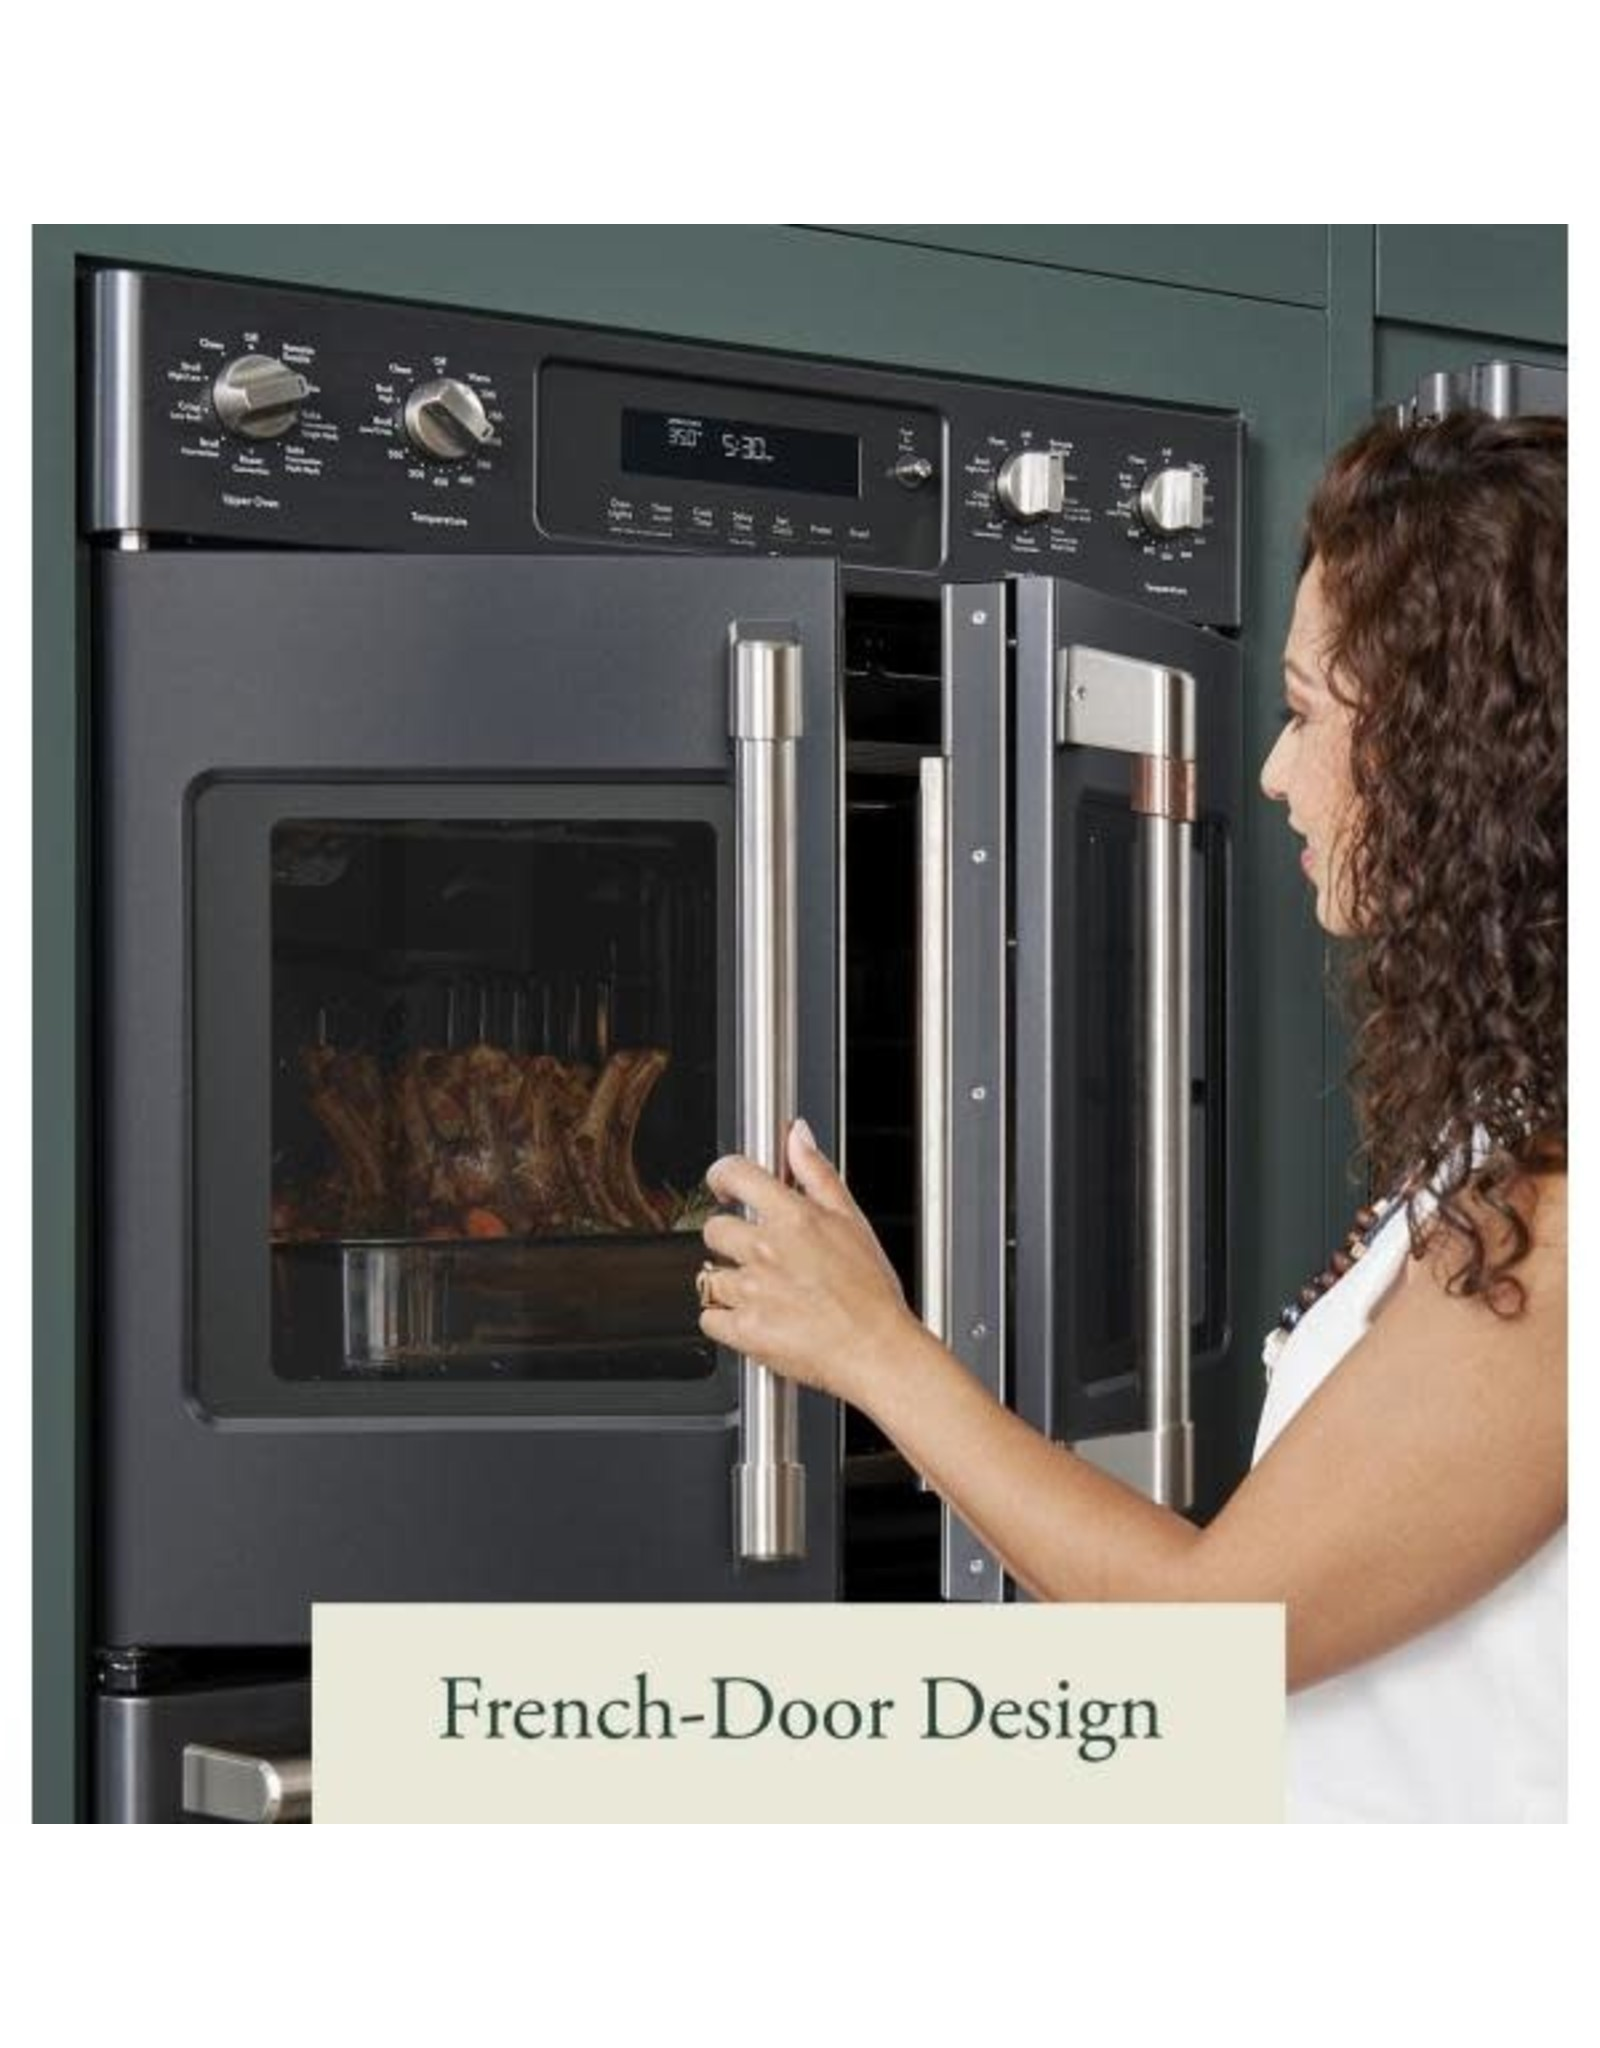 Ctd90fp3md1 30 In Smart Double Electric French Door Wall Oven With Convection Self Cleaning In Matte Black Fingerprint Resistant Black Friday